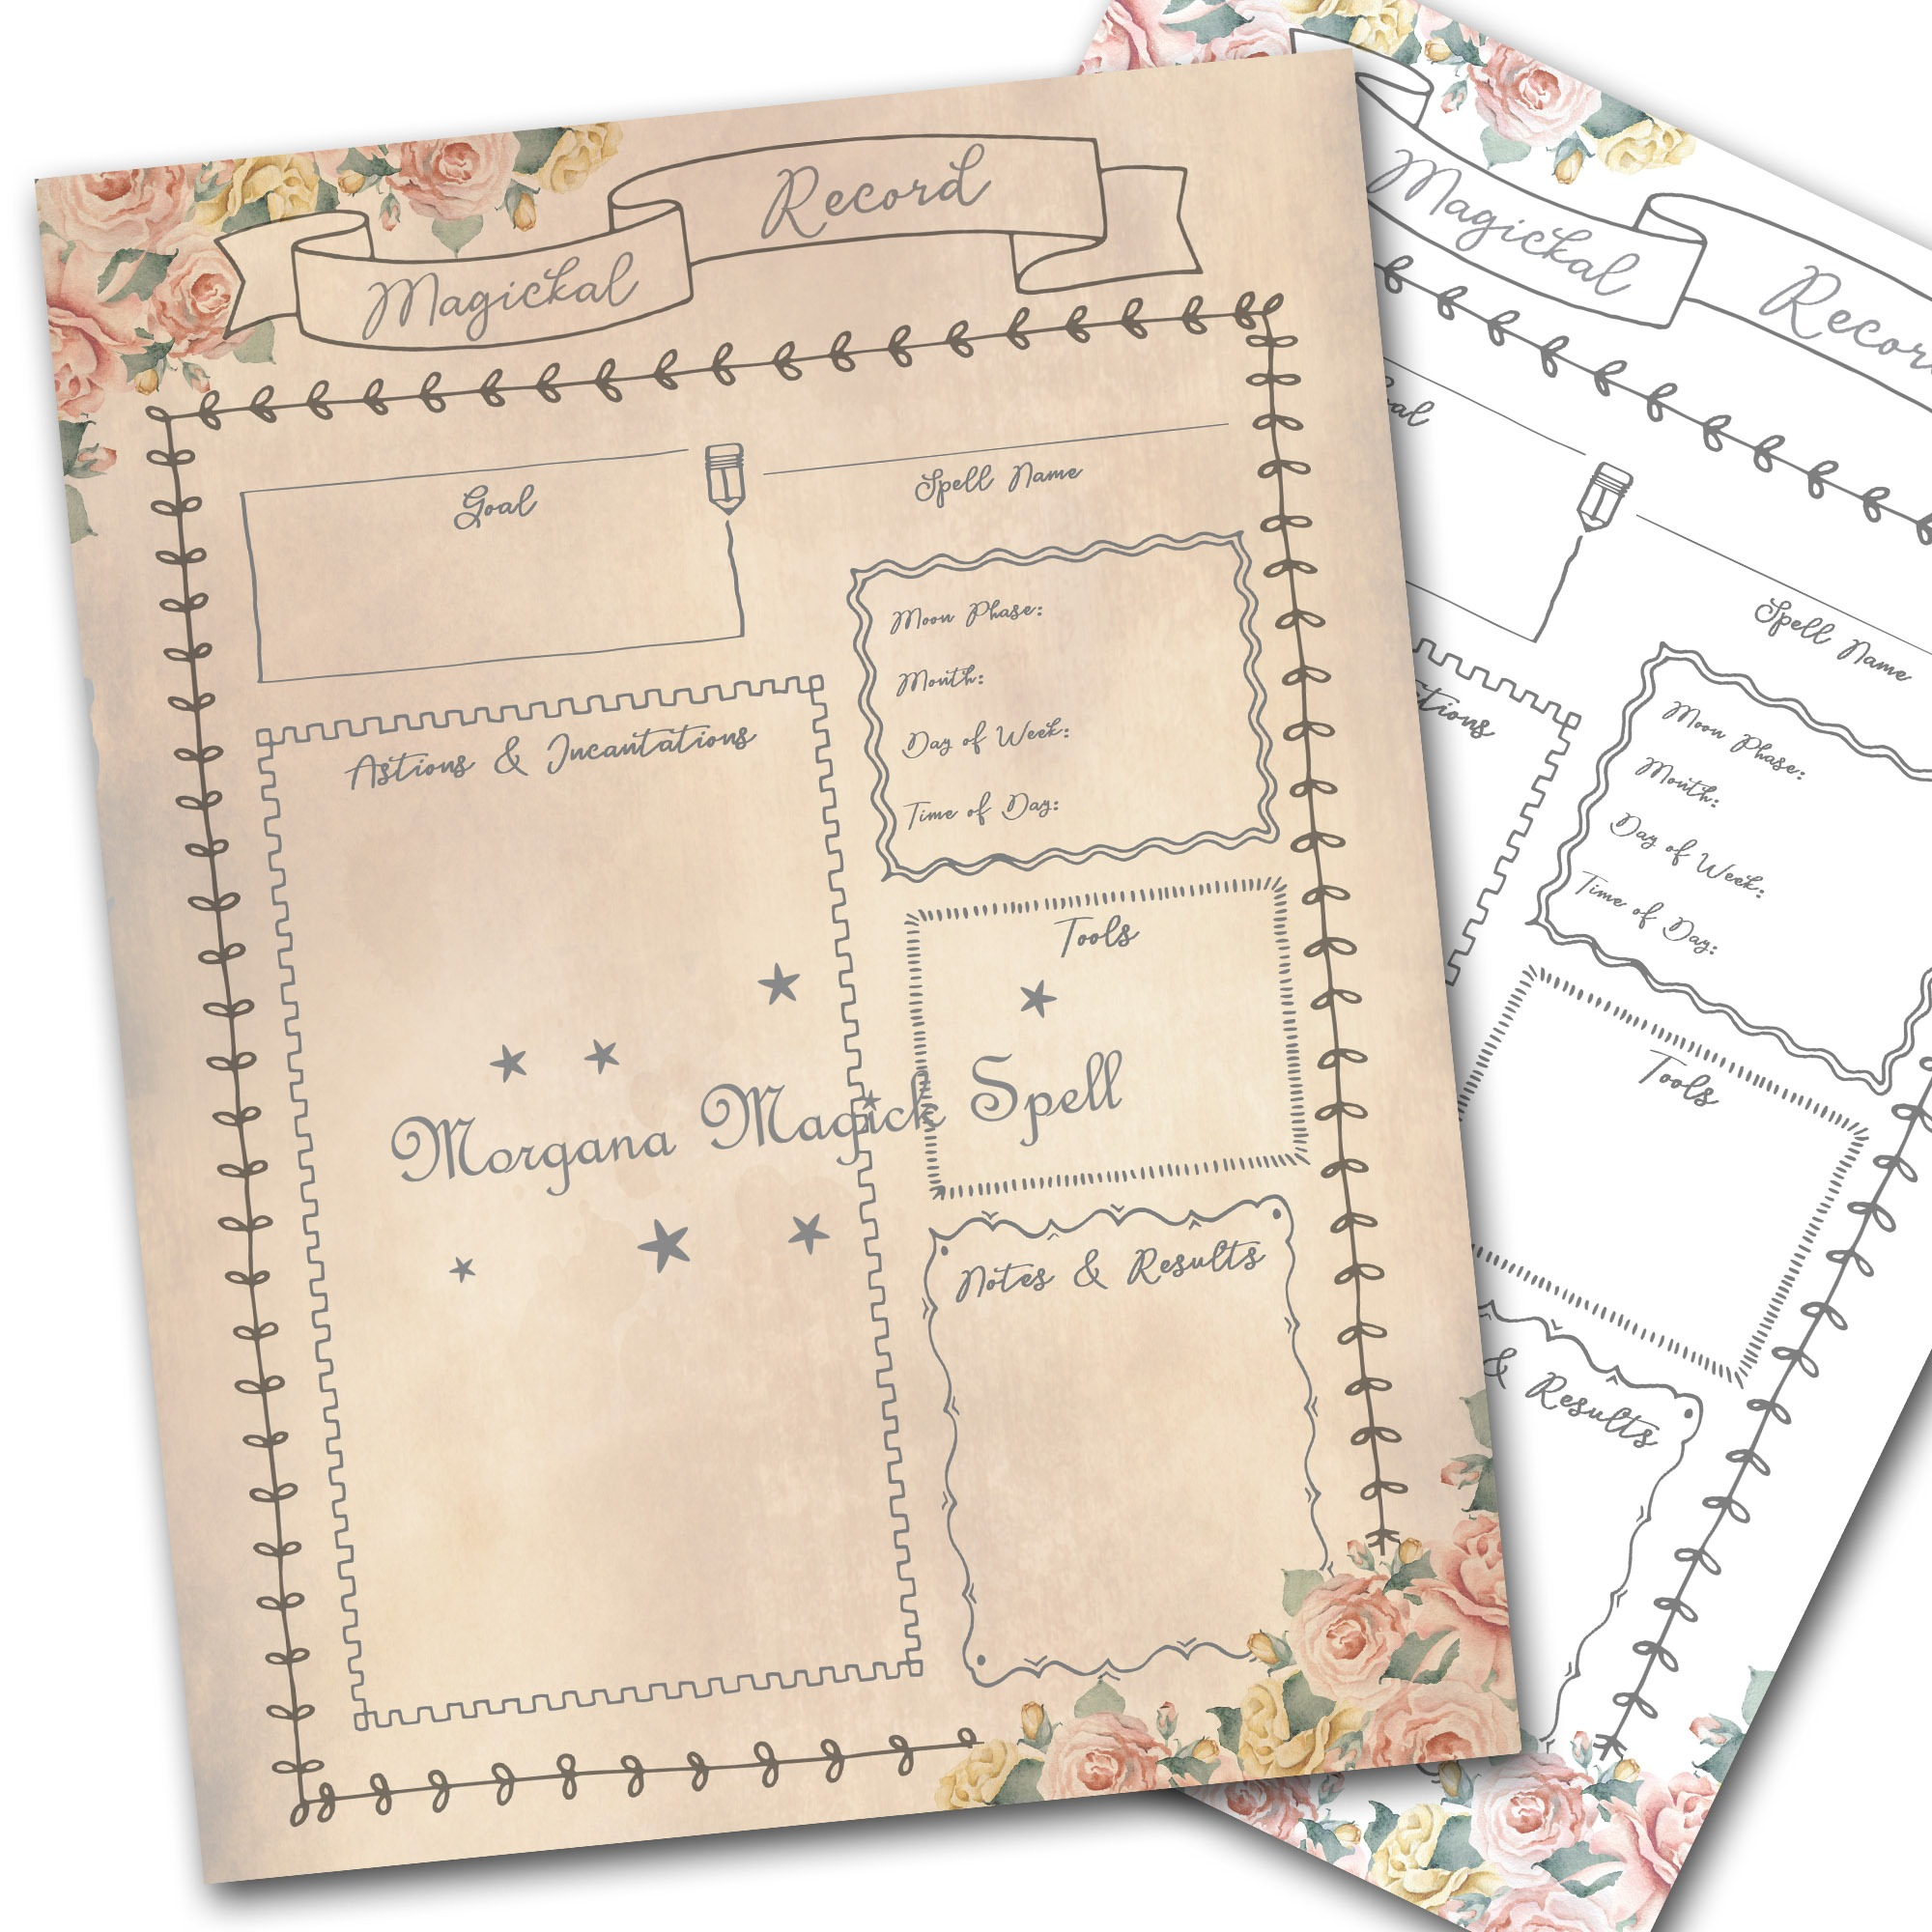 SPELL & RITUAL TEMPLATES - Keep a Record of Your Spells and Rituals